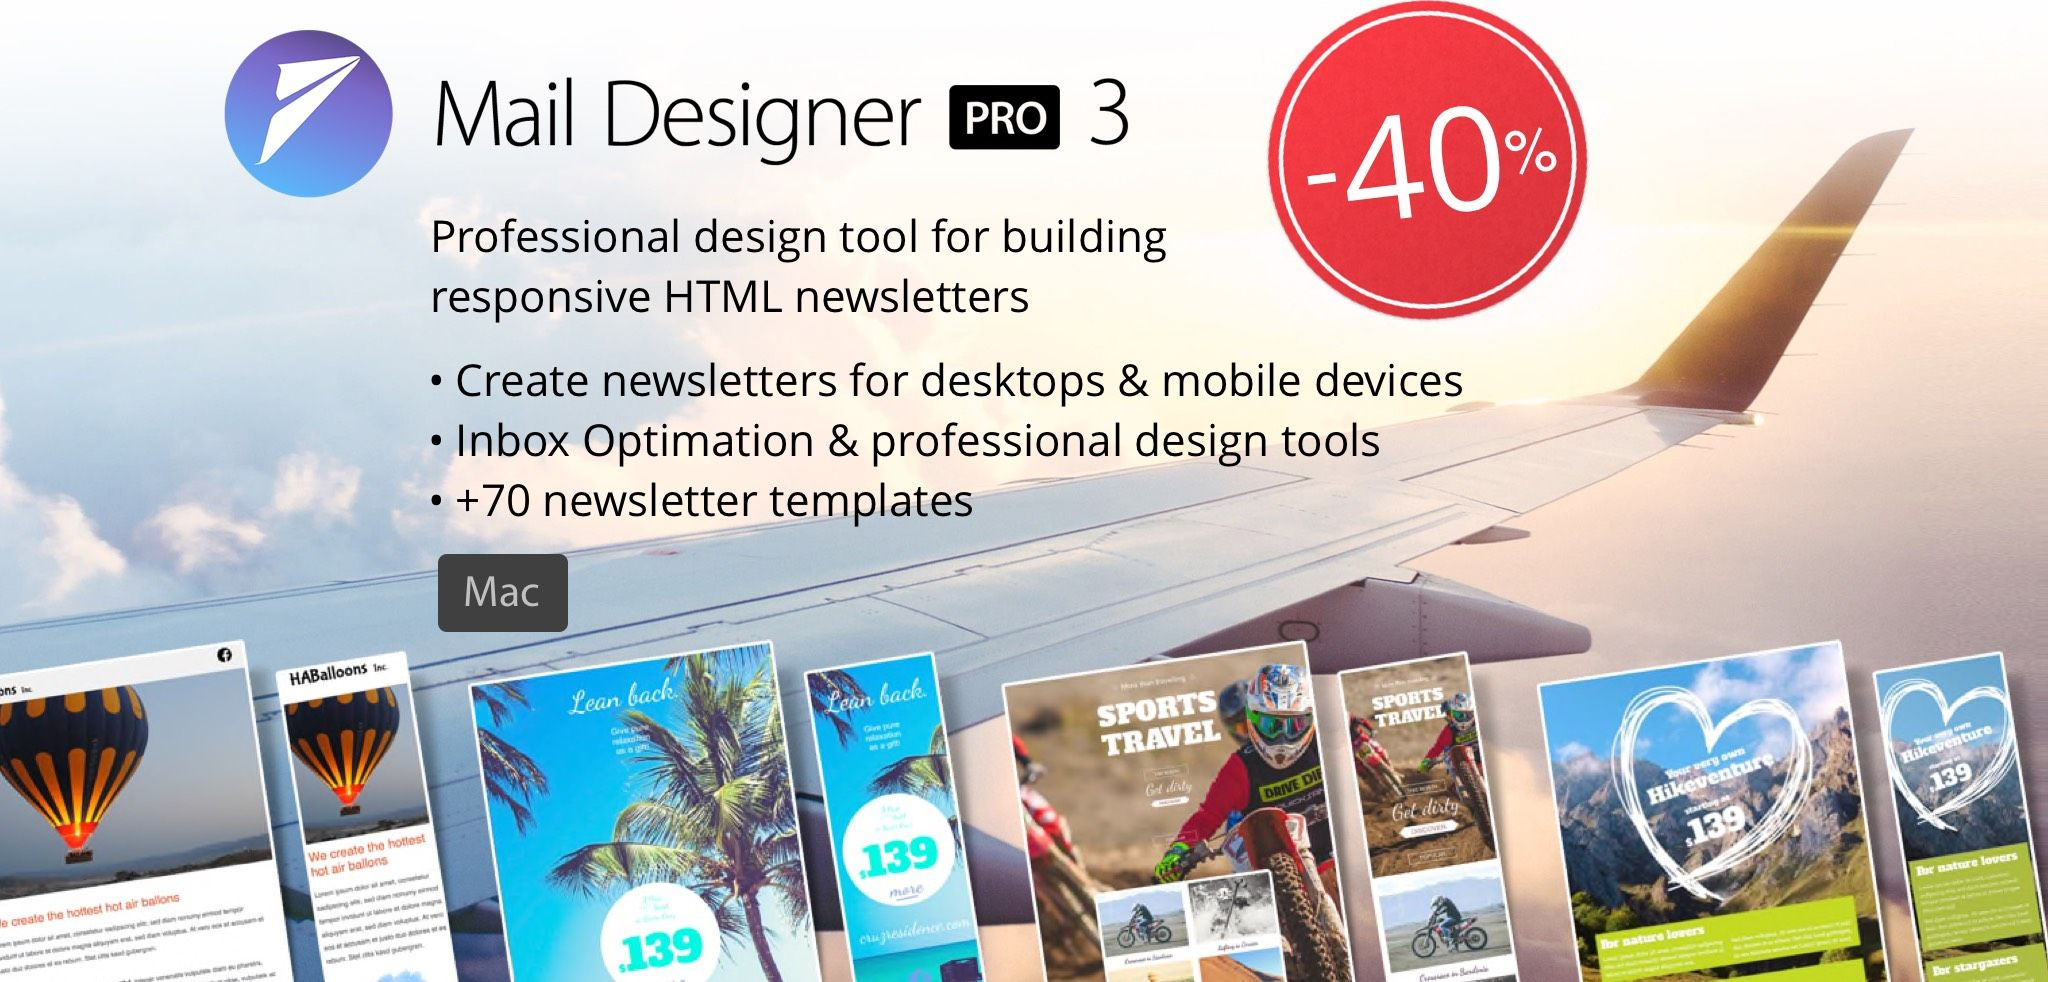 Top Email Templates Equinux Mail Designer 3 For Mac 30 50 40 Black Friday Deal 2016 11 25 Till 28th Pro Design Tool Building Responsive